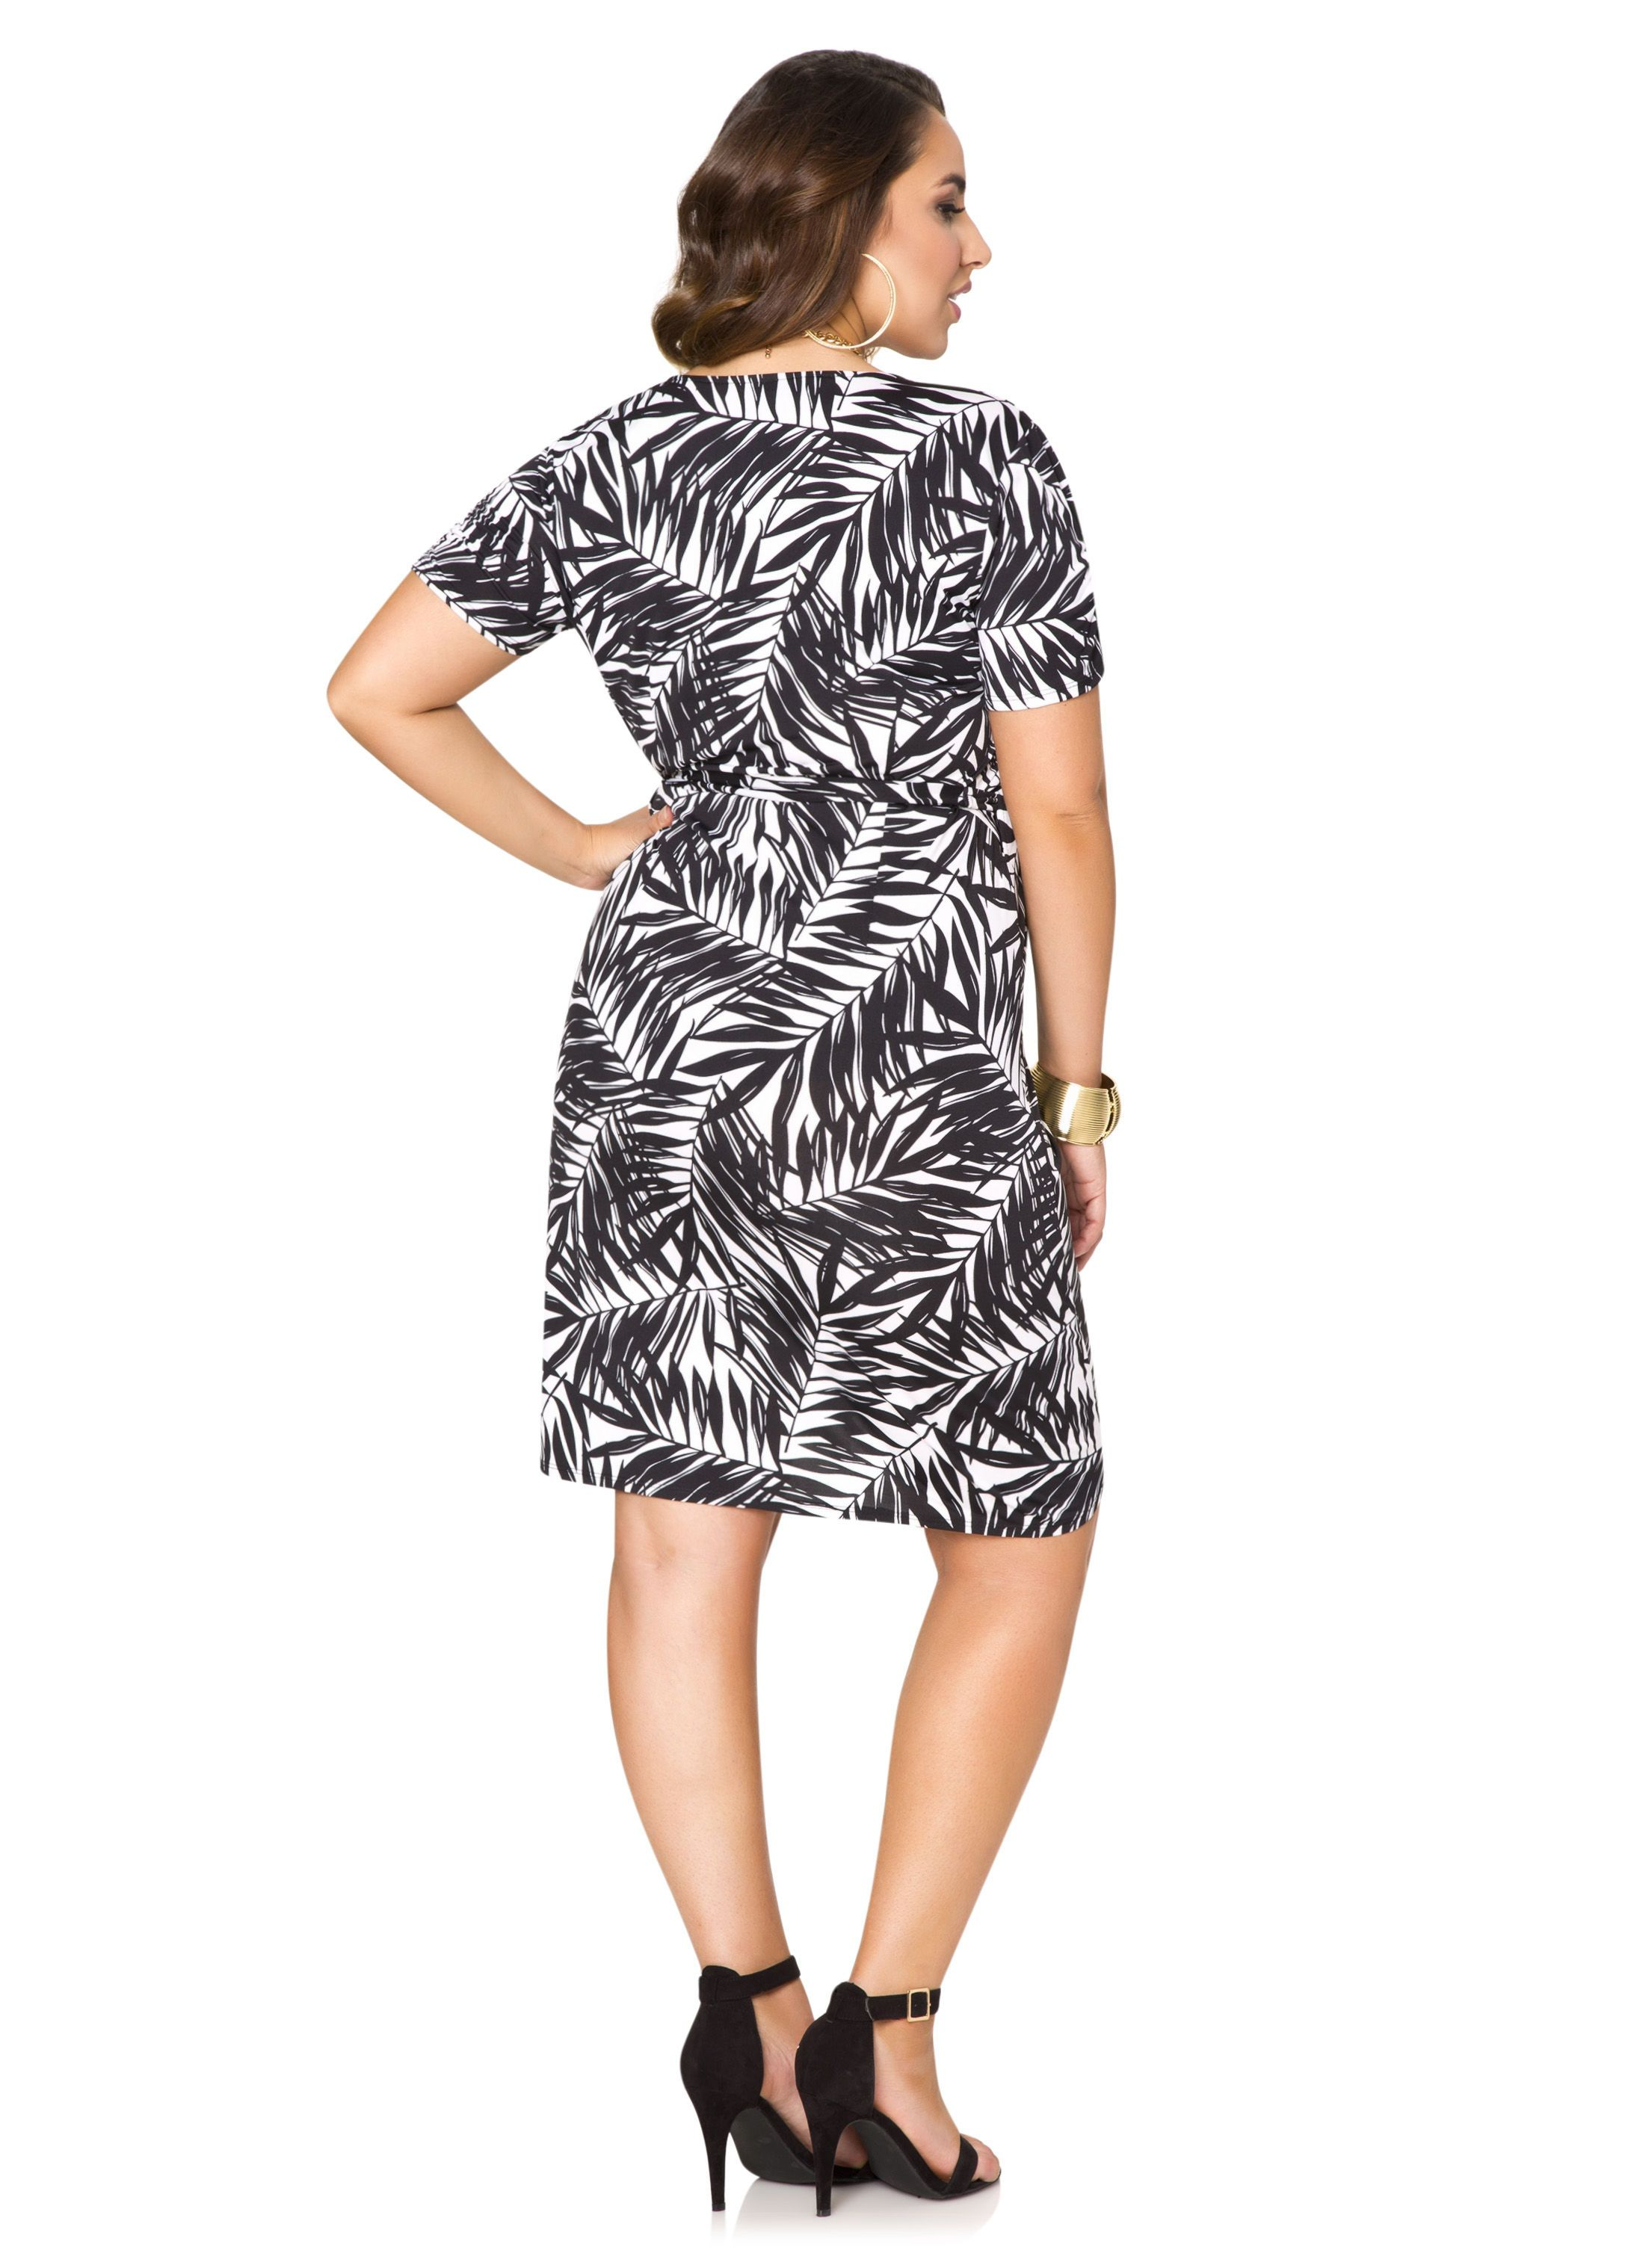 5b09806fd35 Tropical Print Wrap Dress - Ashley Stewart. Tropical Print Wrap Dress - Ashley  Stewart Fashionable Plus Size Clothing ...